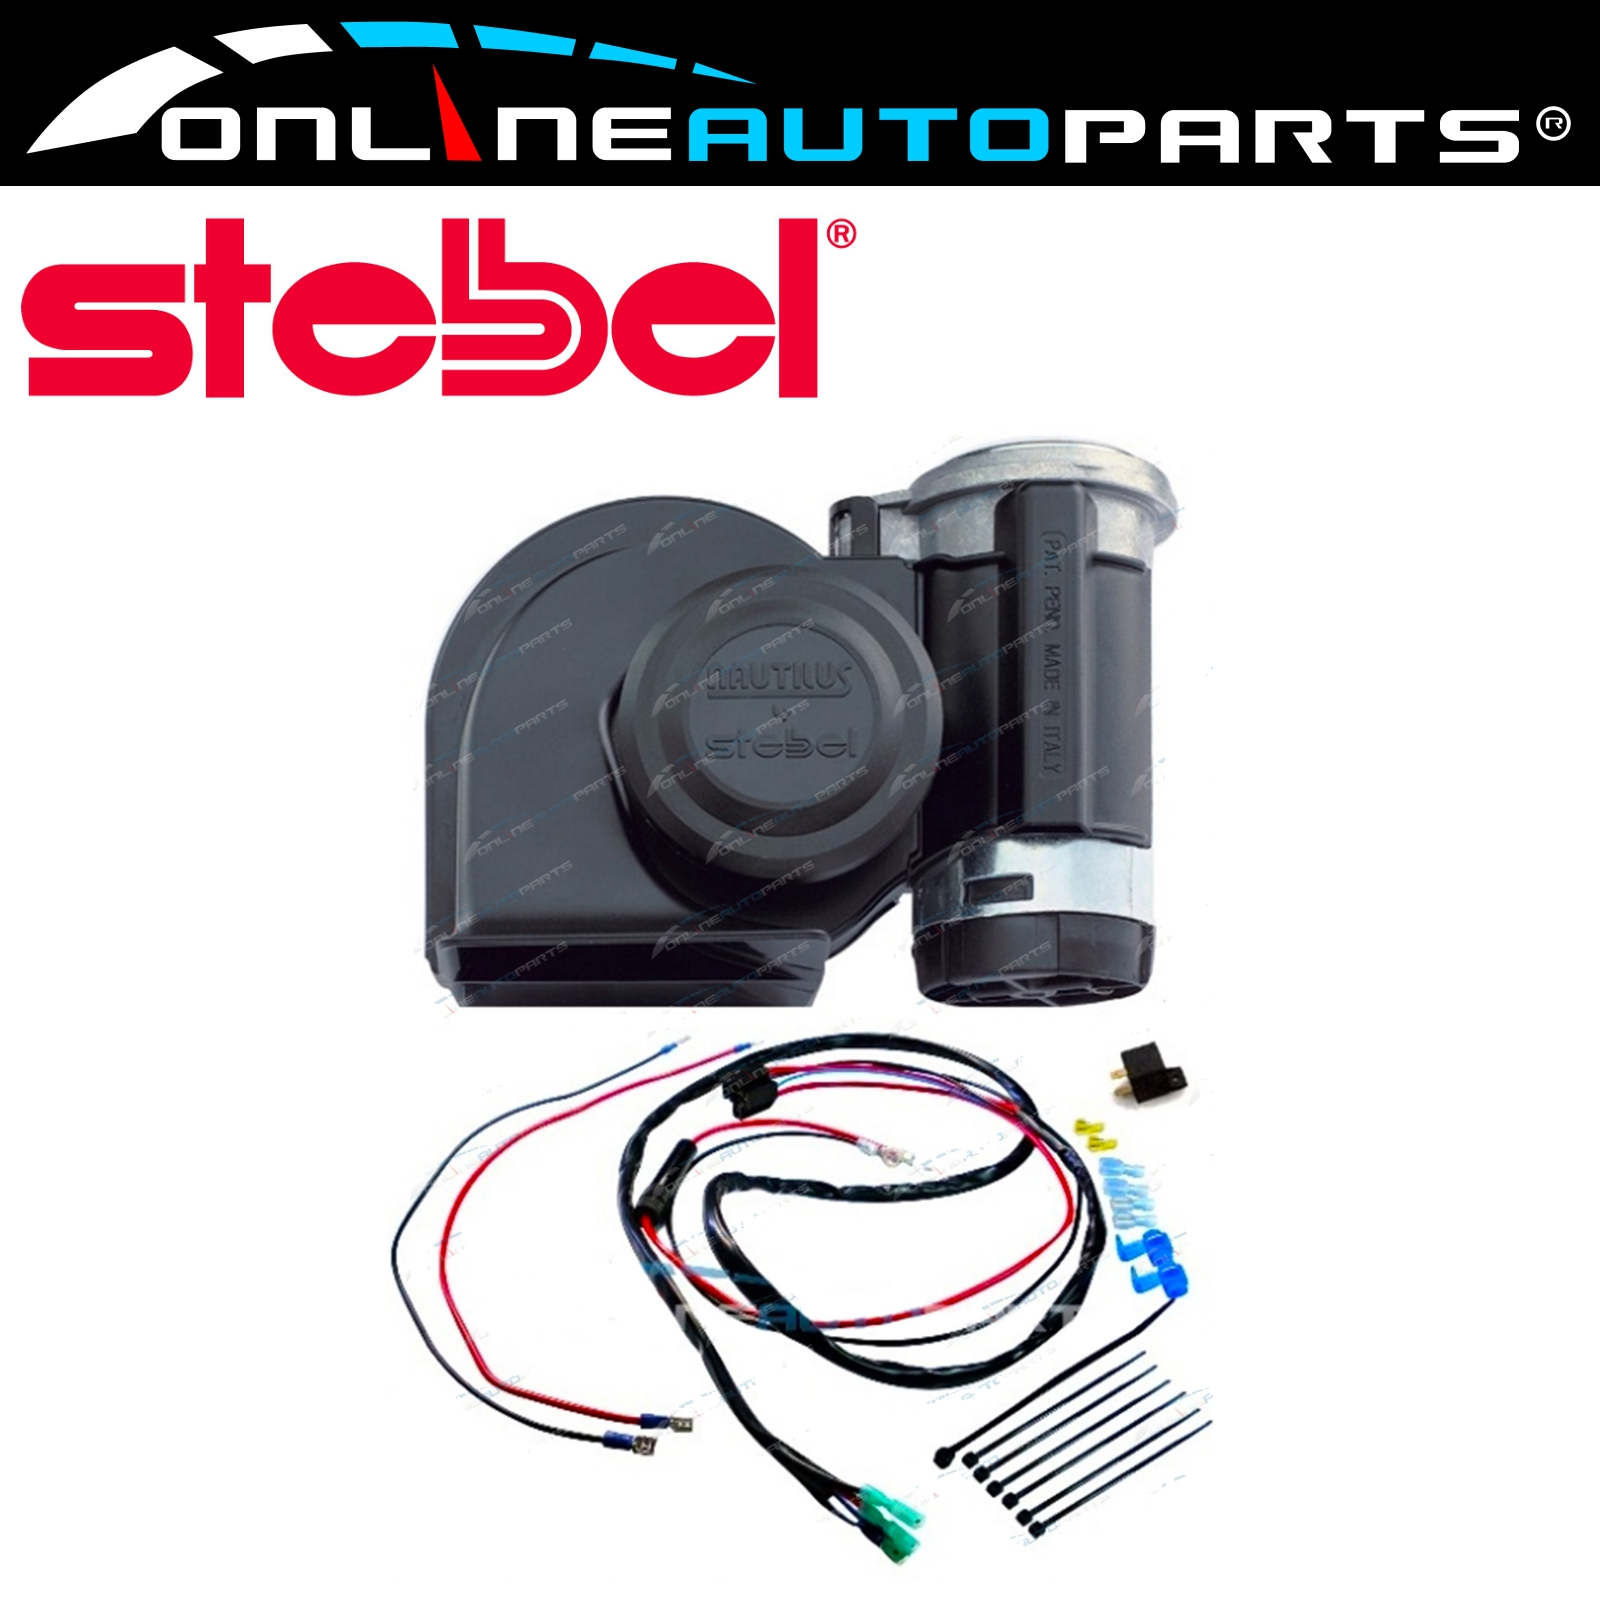 Details About Stebel Nautilus Air Horn Relay Wiring Kit Plugnplay Electric Plug N Play Car